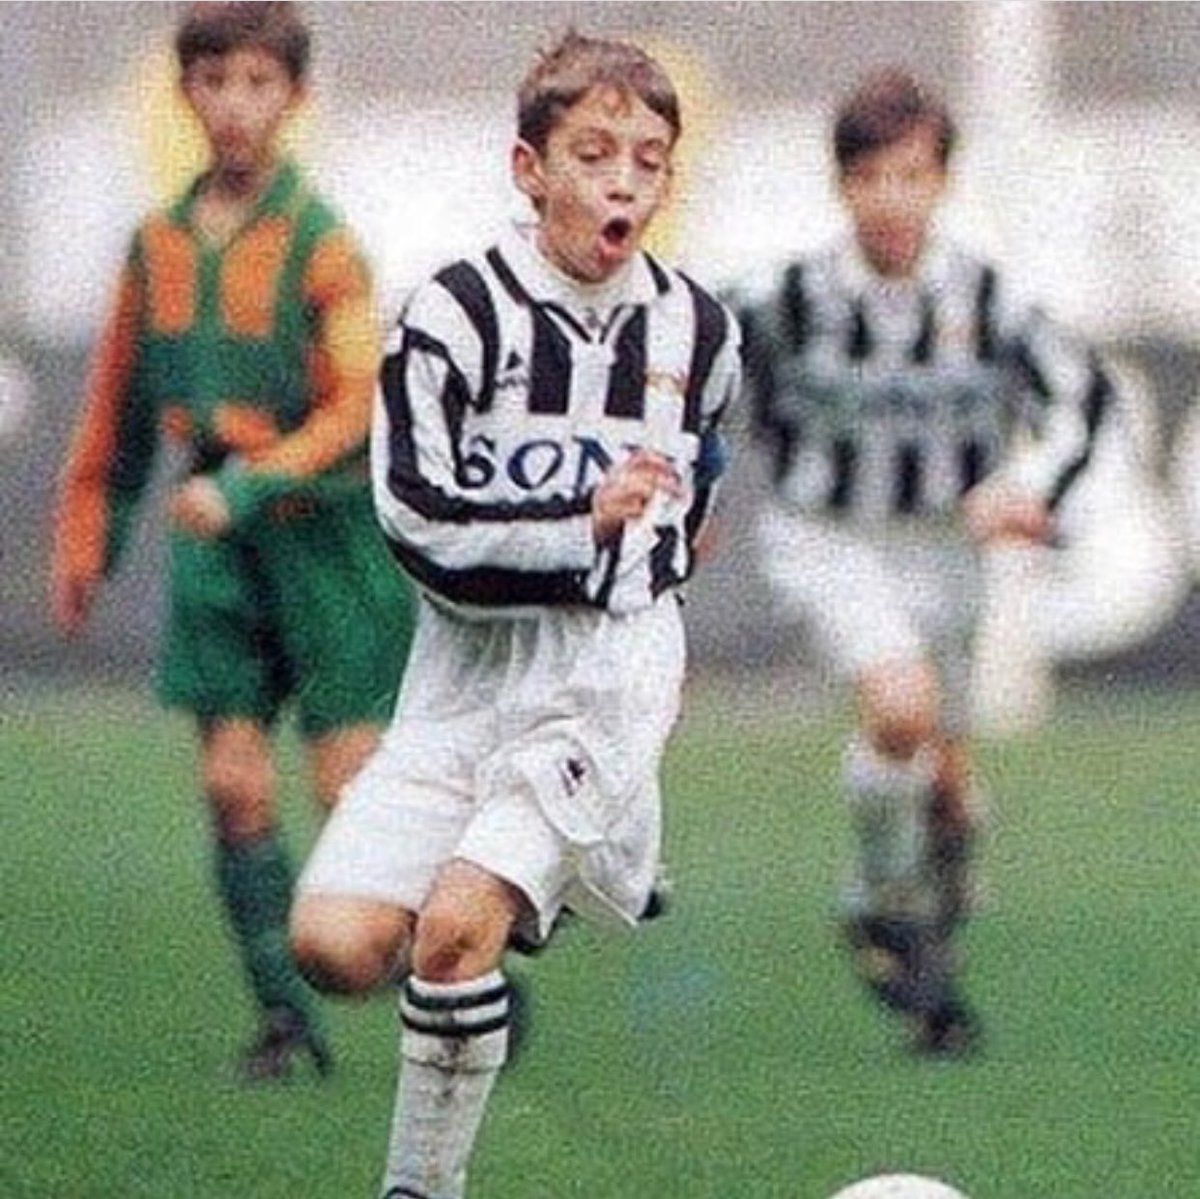 End of an Era. After 25 years, Marchisio has left Juventus ????